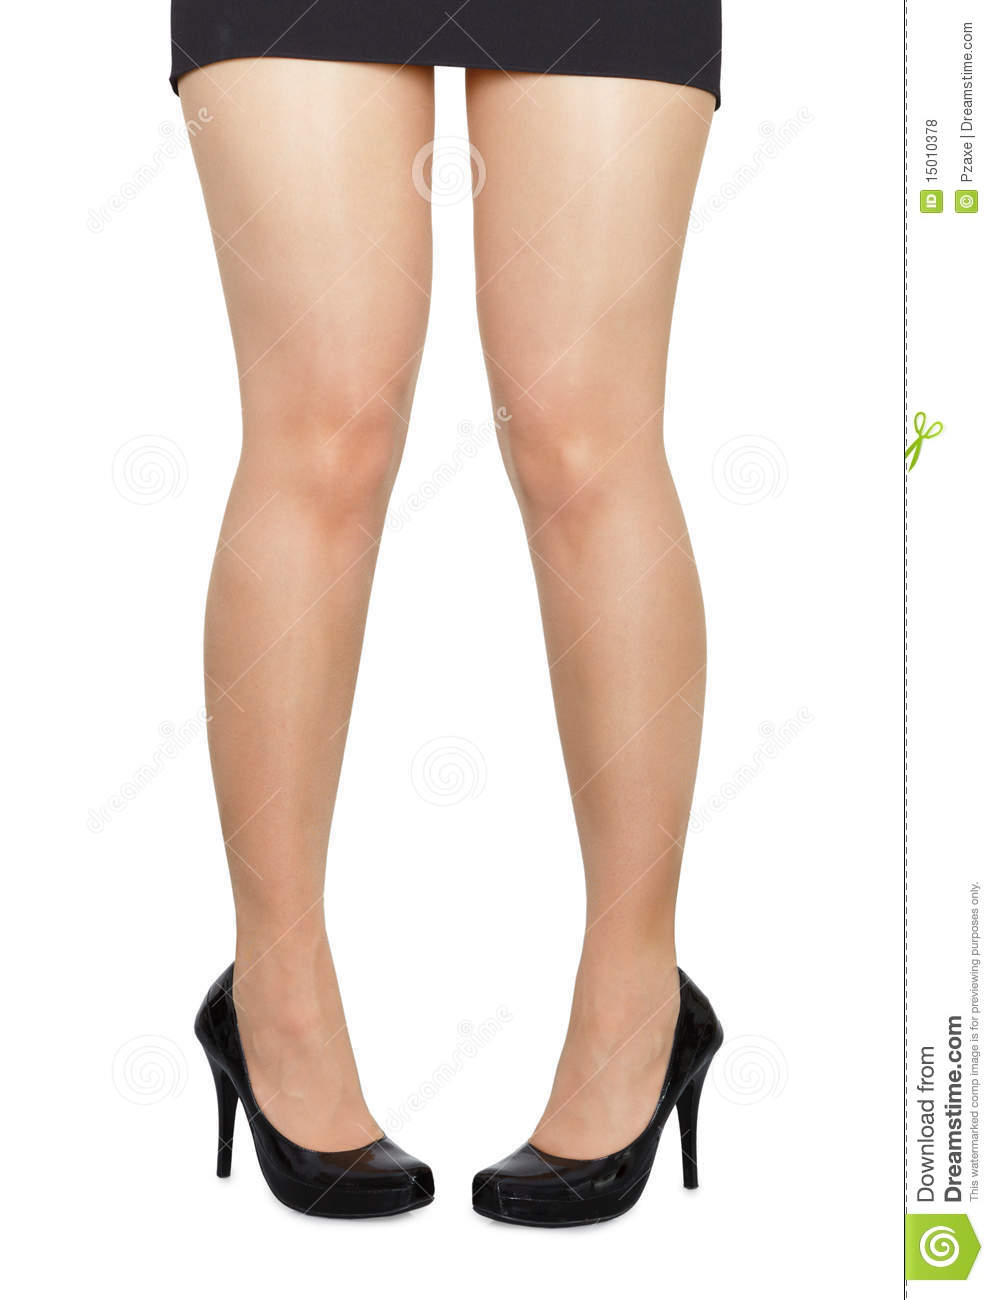 More similar stock images of ` Comical standing woman s legs on white ...